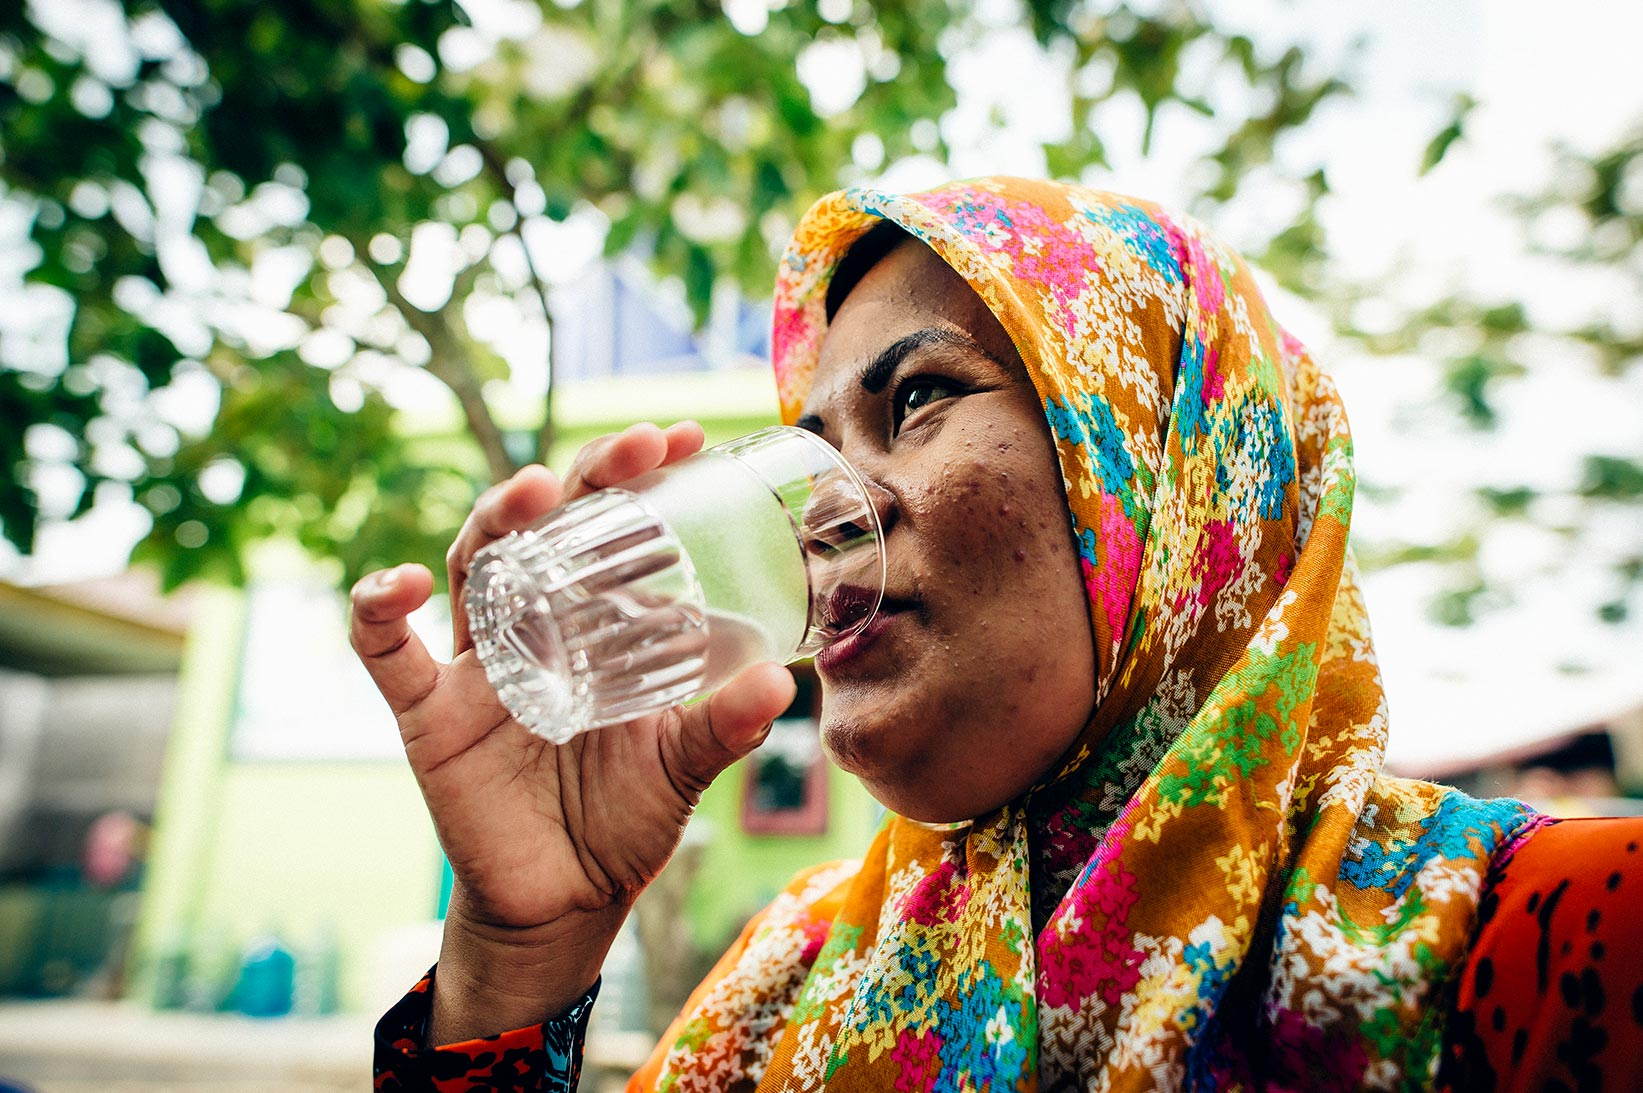 Hayani drinks safe water at her home in Indonesia.